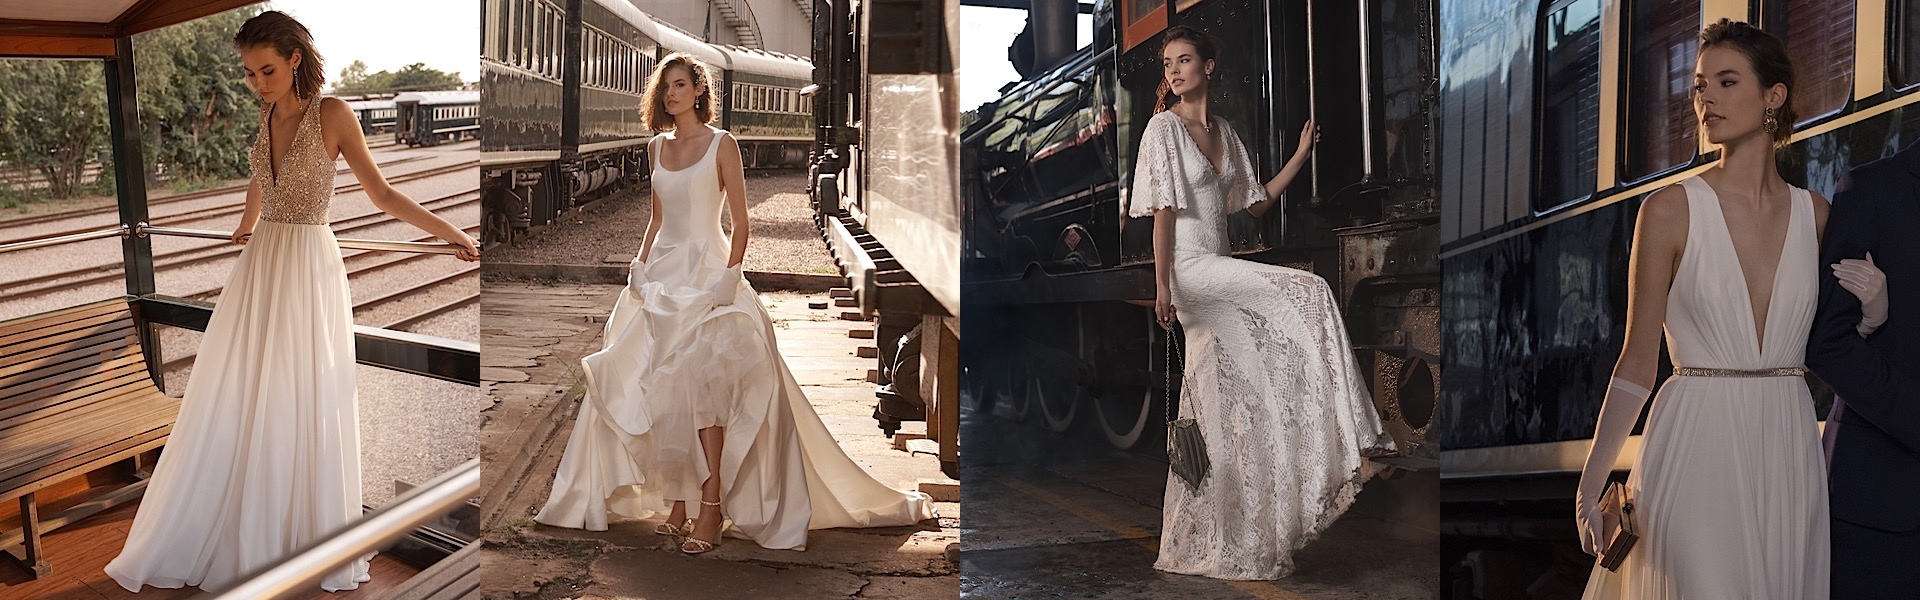 Trendy Chic BHLDN Wedding Dresses from the Away We Go Collection ...